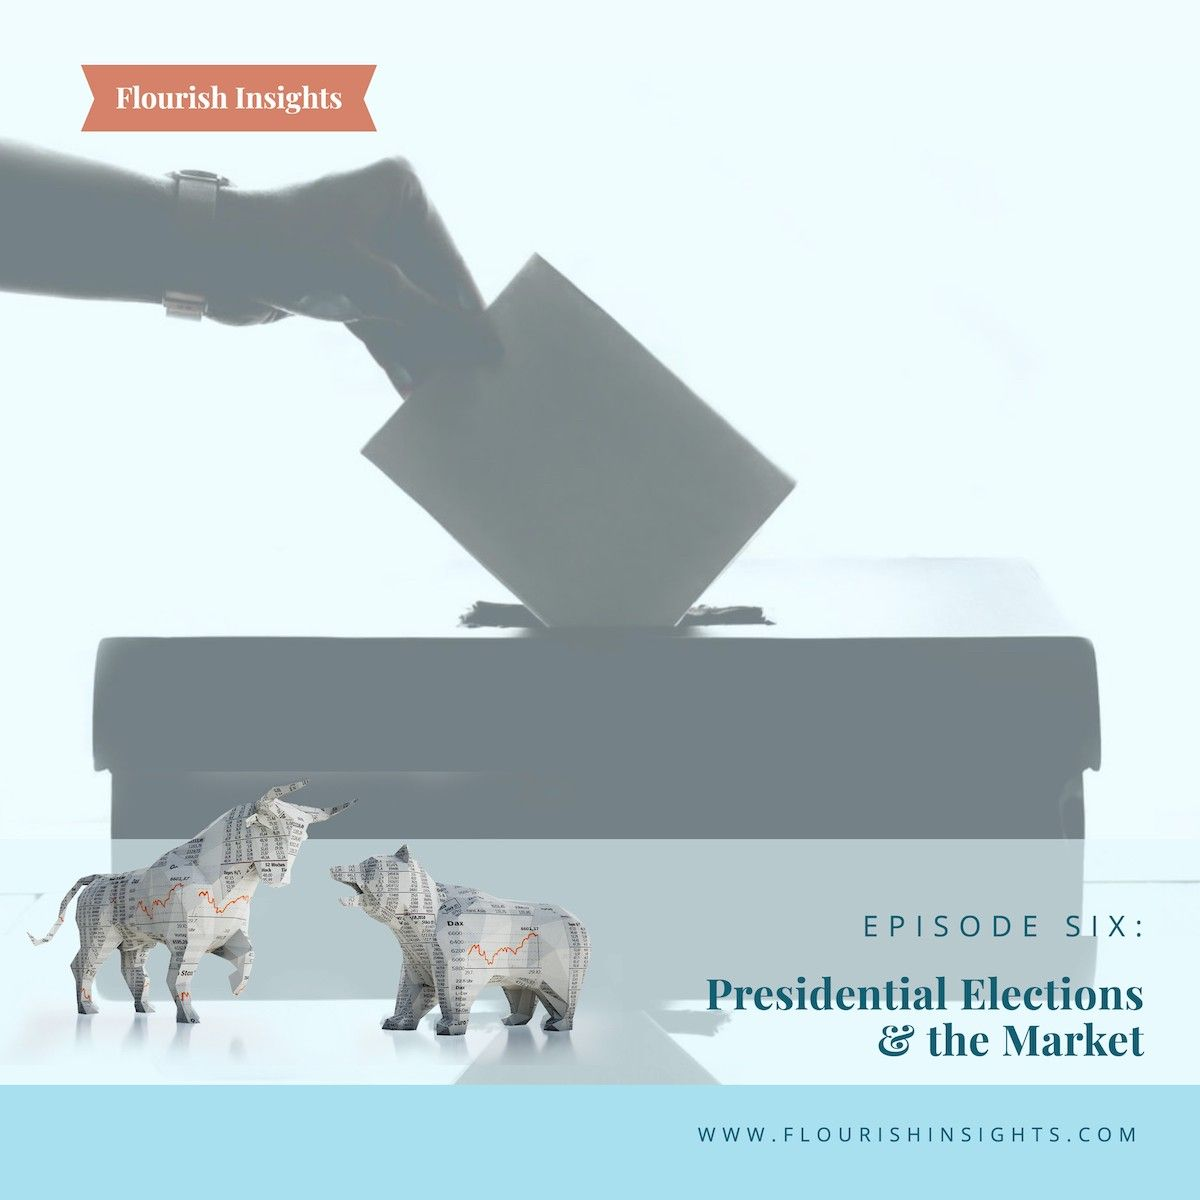 Presidential Elections and the Market